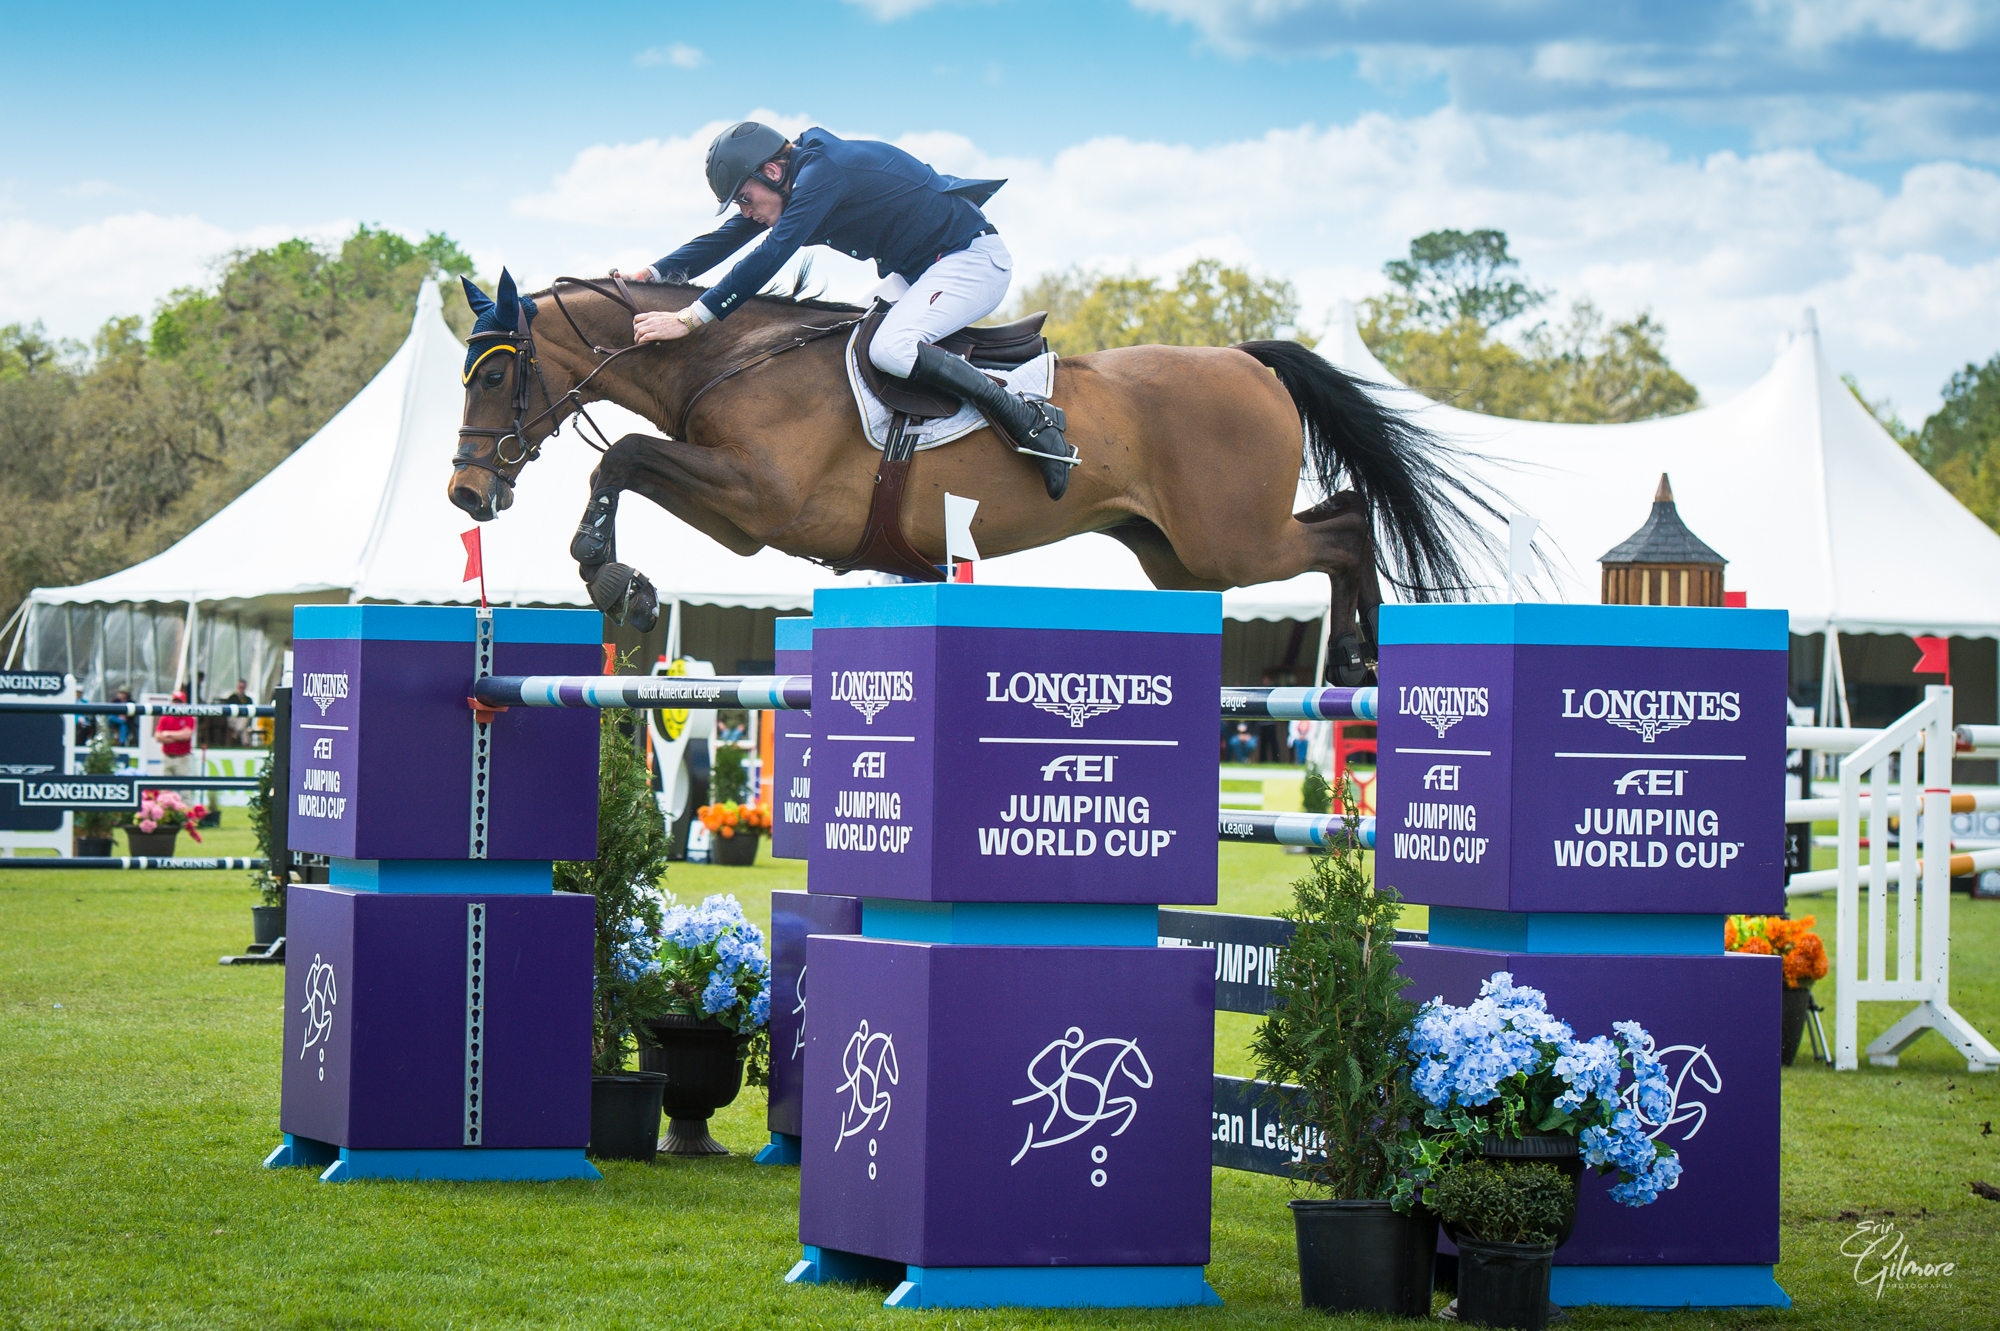 DANIEL COYLE WENT LAST AND FAST TO WIN THE $100,000 LONGINES FEI JUMPING WORLD CUP™ OCALA AT LIVE OAK INTERNATIONAL